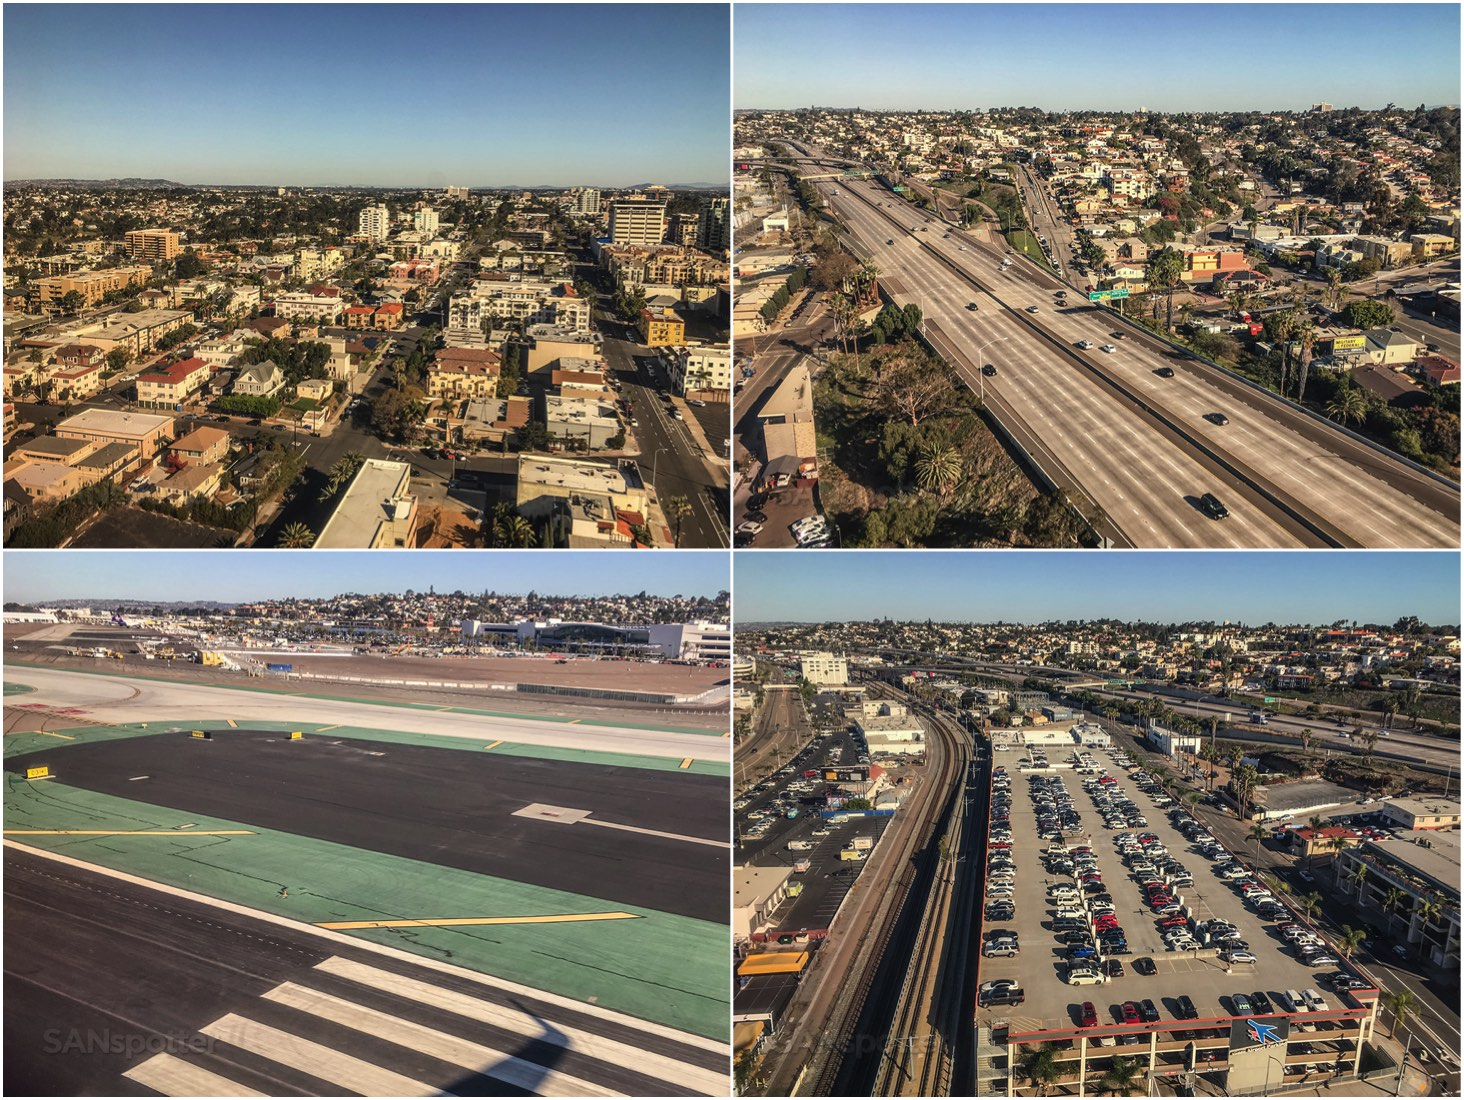 Approach into San Diego Airport